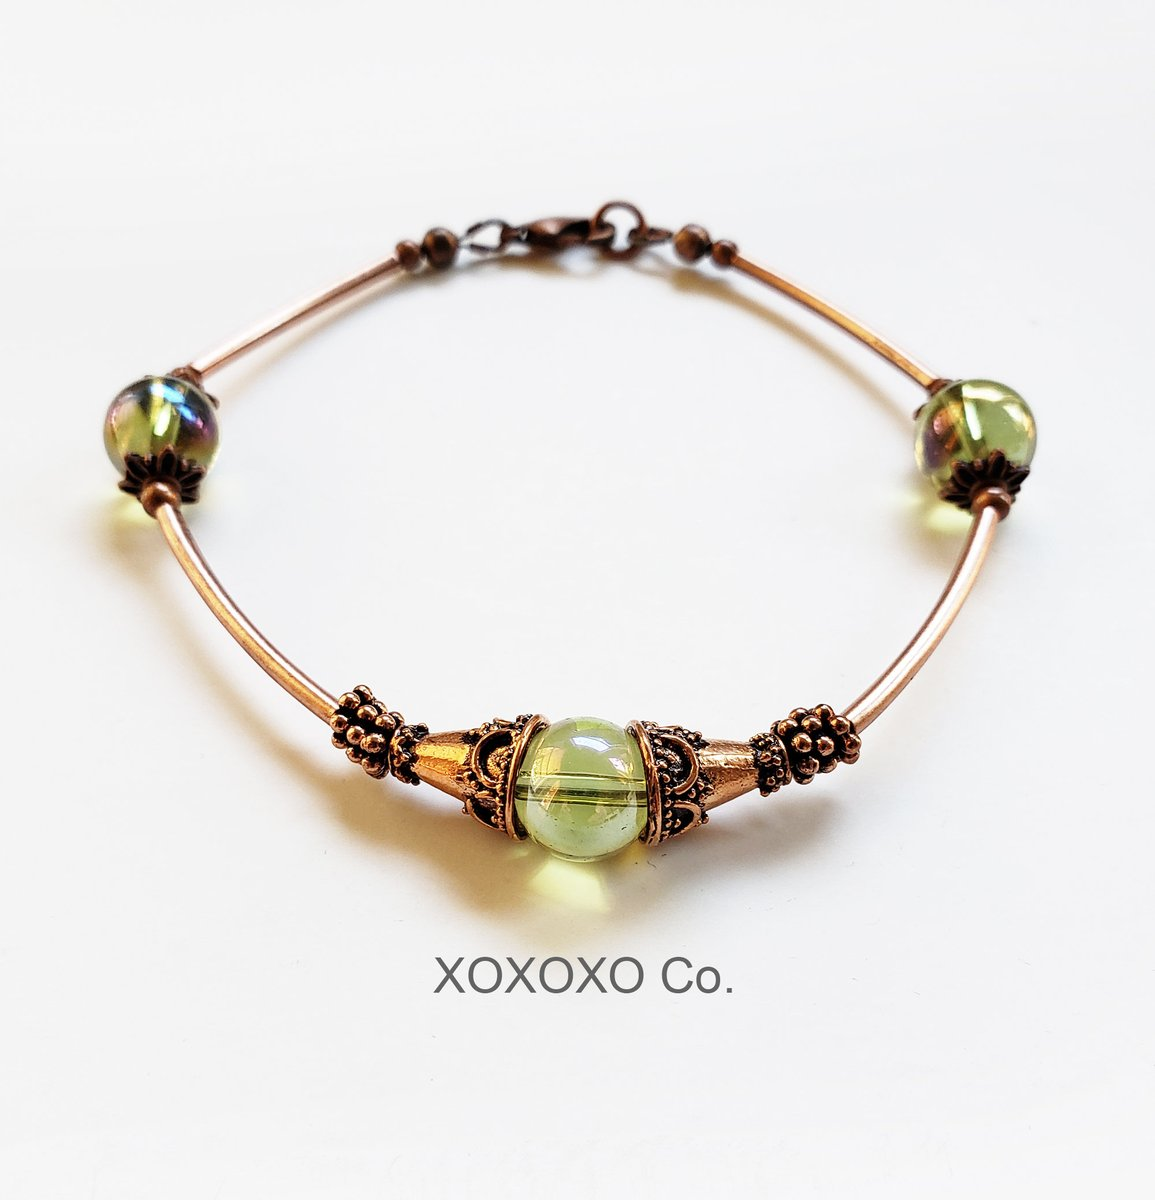 Copper Bracelet with AV Green Glass Beads and Copper Tube Beads  #christmasgifts #handmade #giftsforher #fashion #jewelryblogger #Etsy #style #handmadejewelry #shopsmall